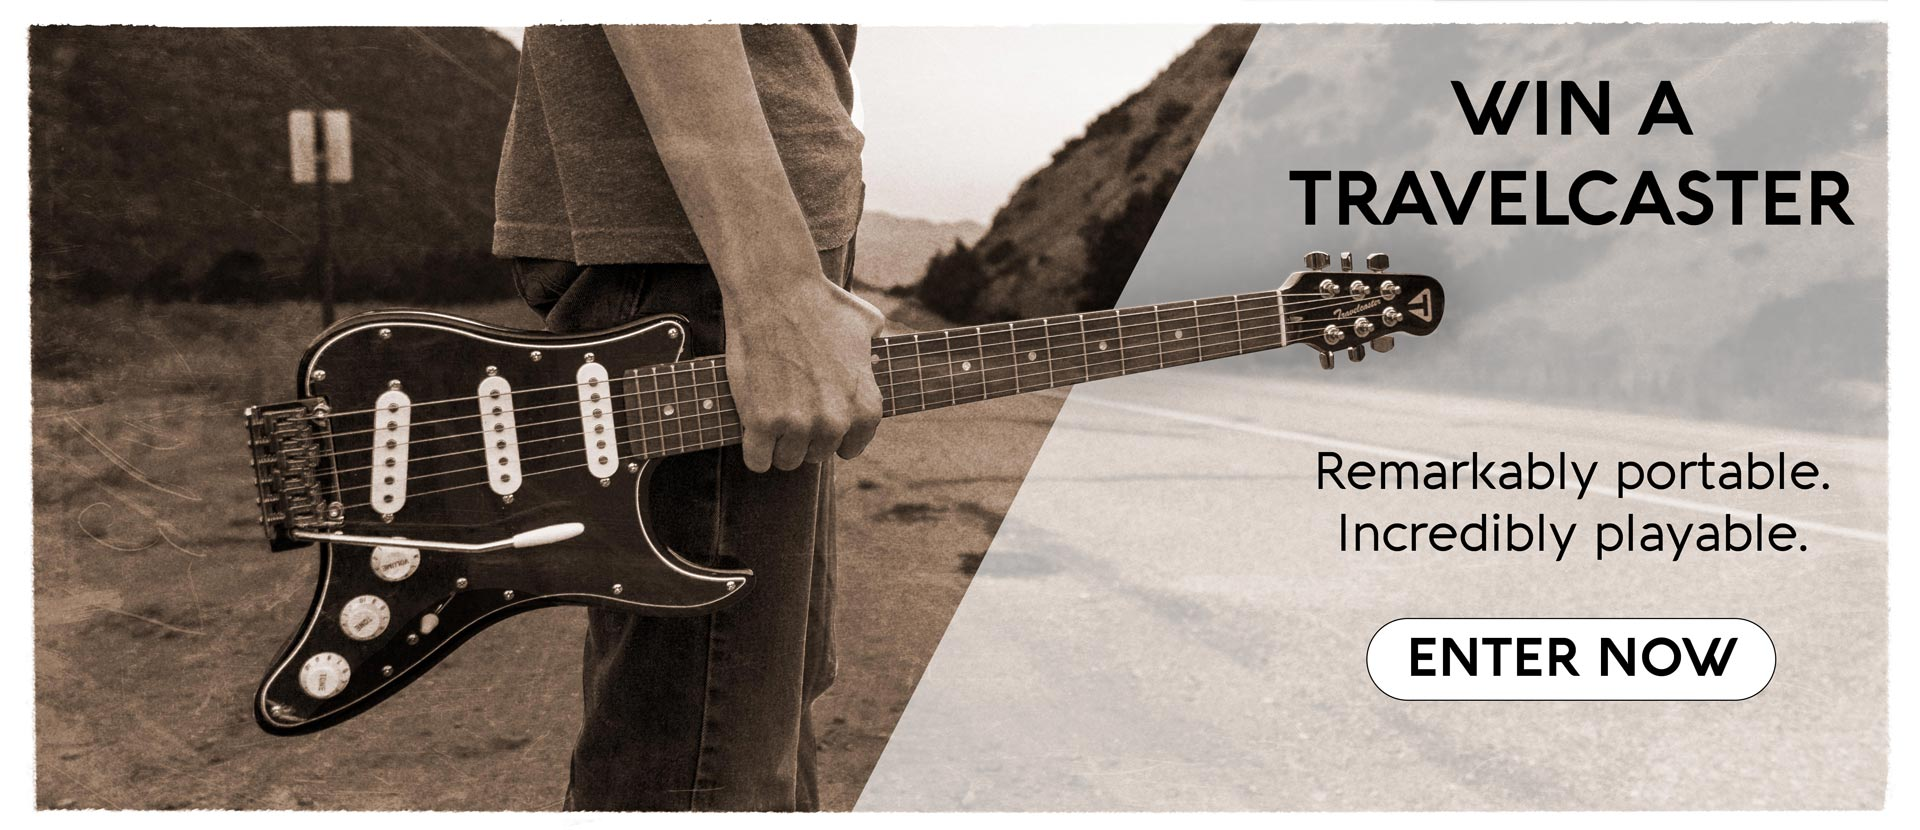 Traveler Guitar Modify Acoustic Into The Electric On Fm Wireless Transmitter